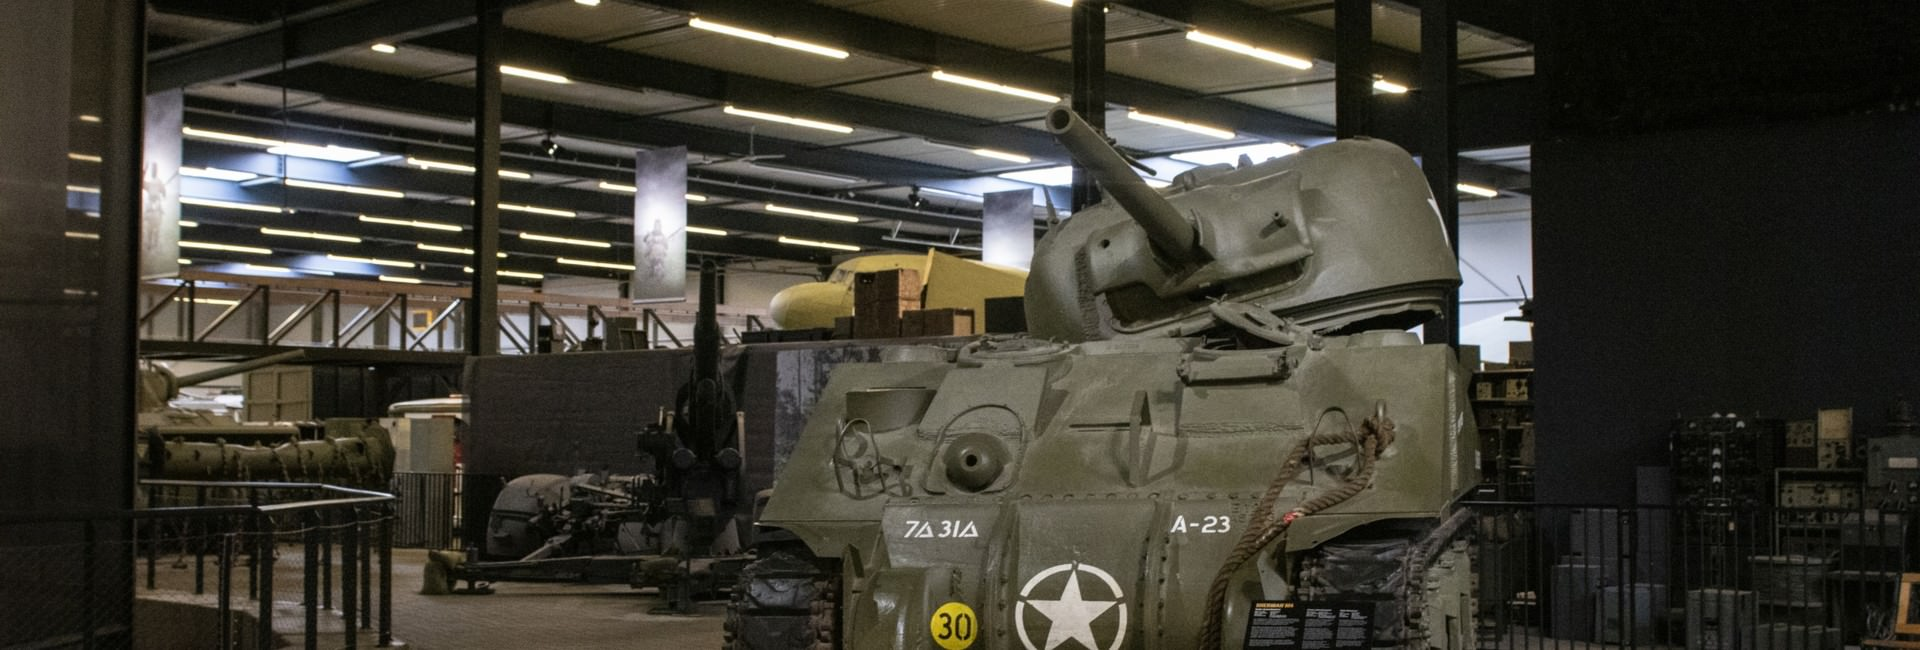 oorlogsmuseum - Military vehicle collection